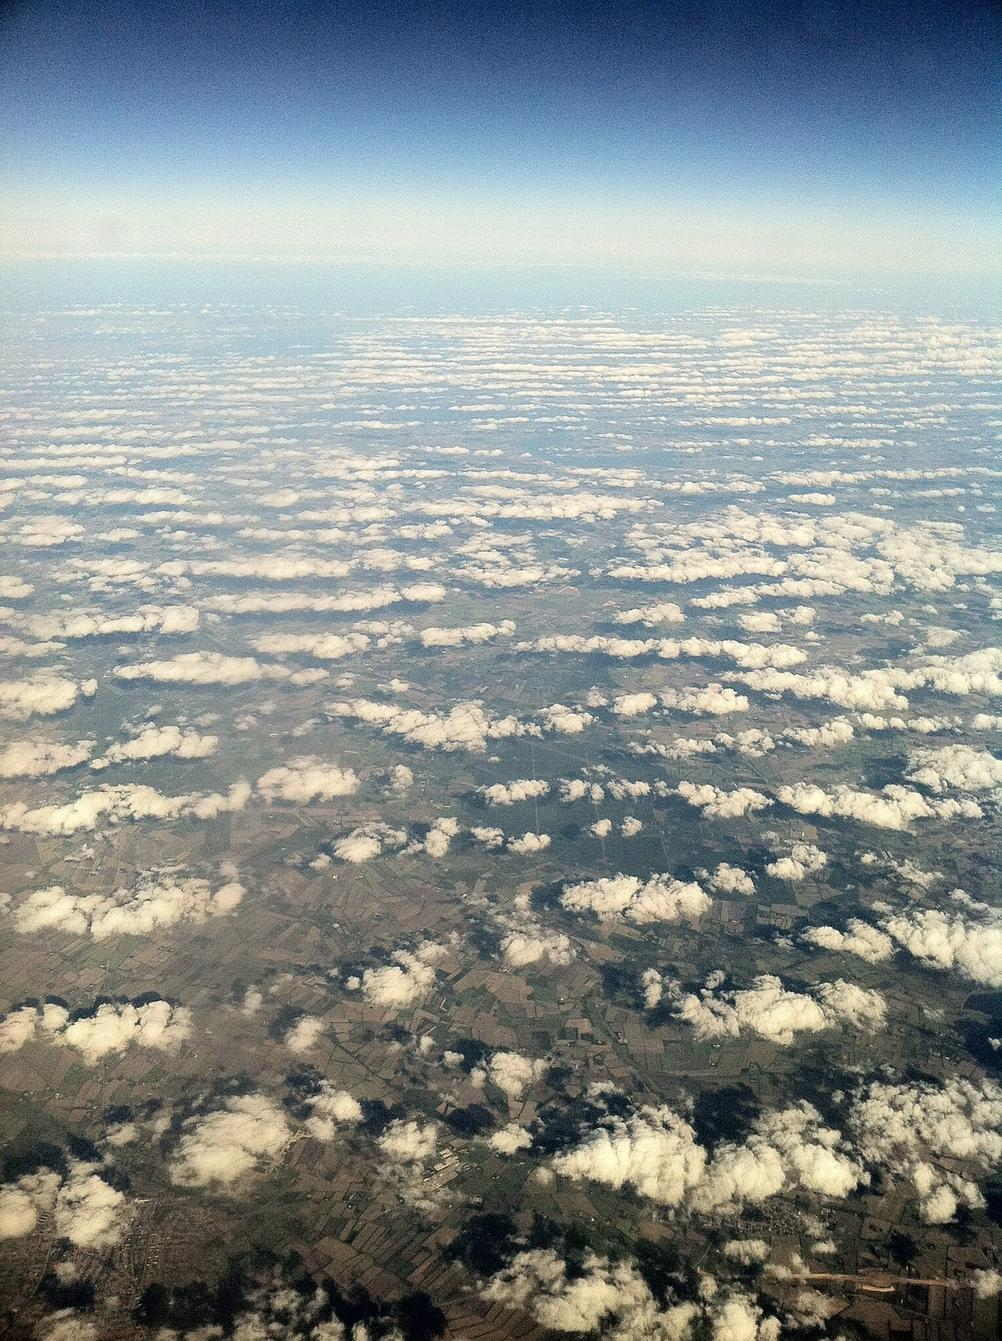 Photo taken from a plane.